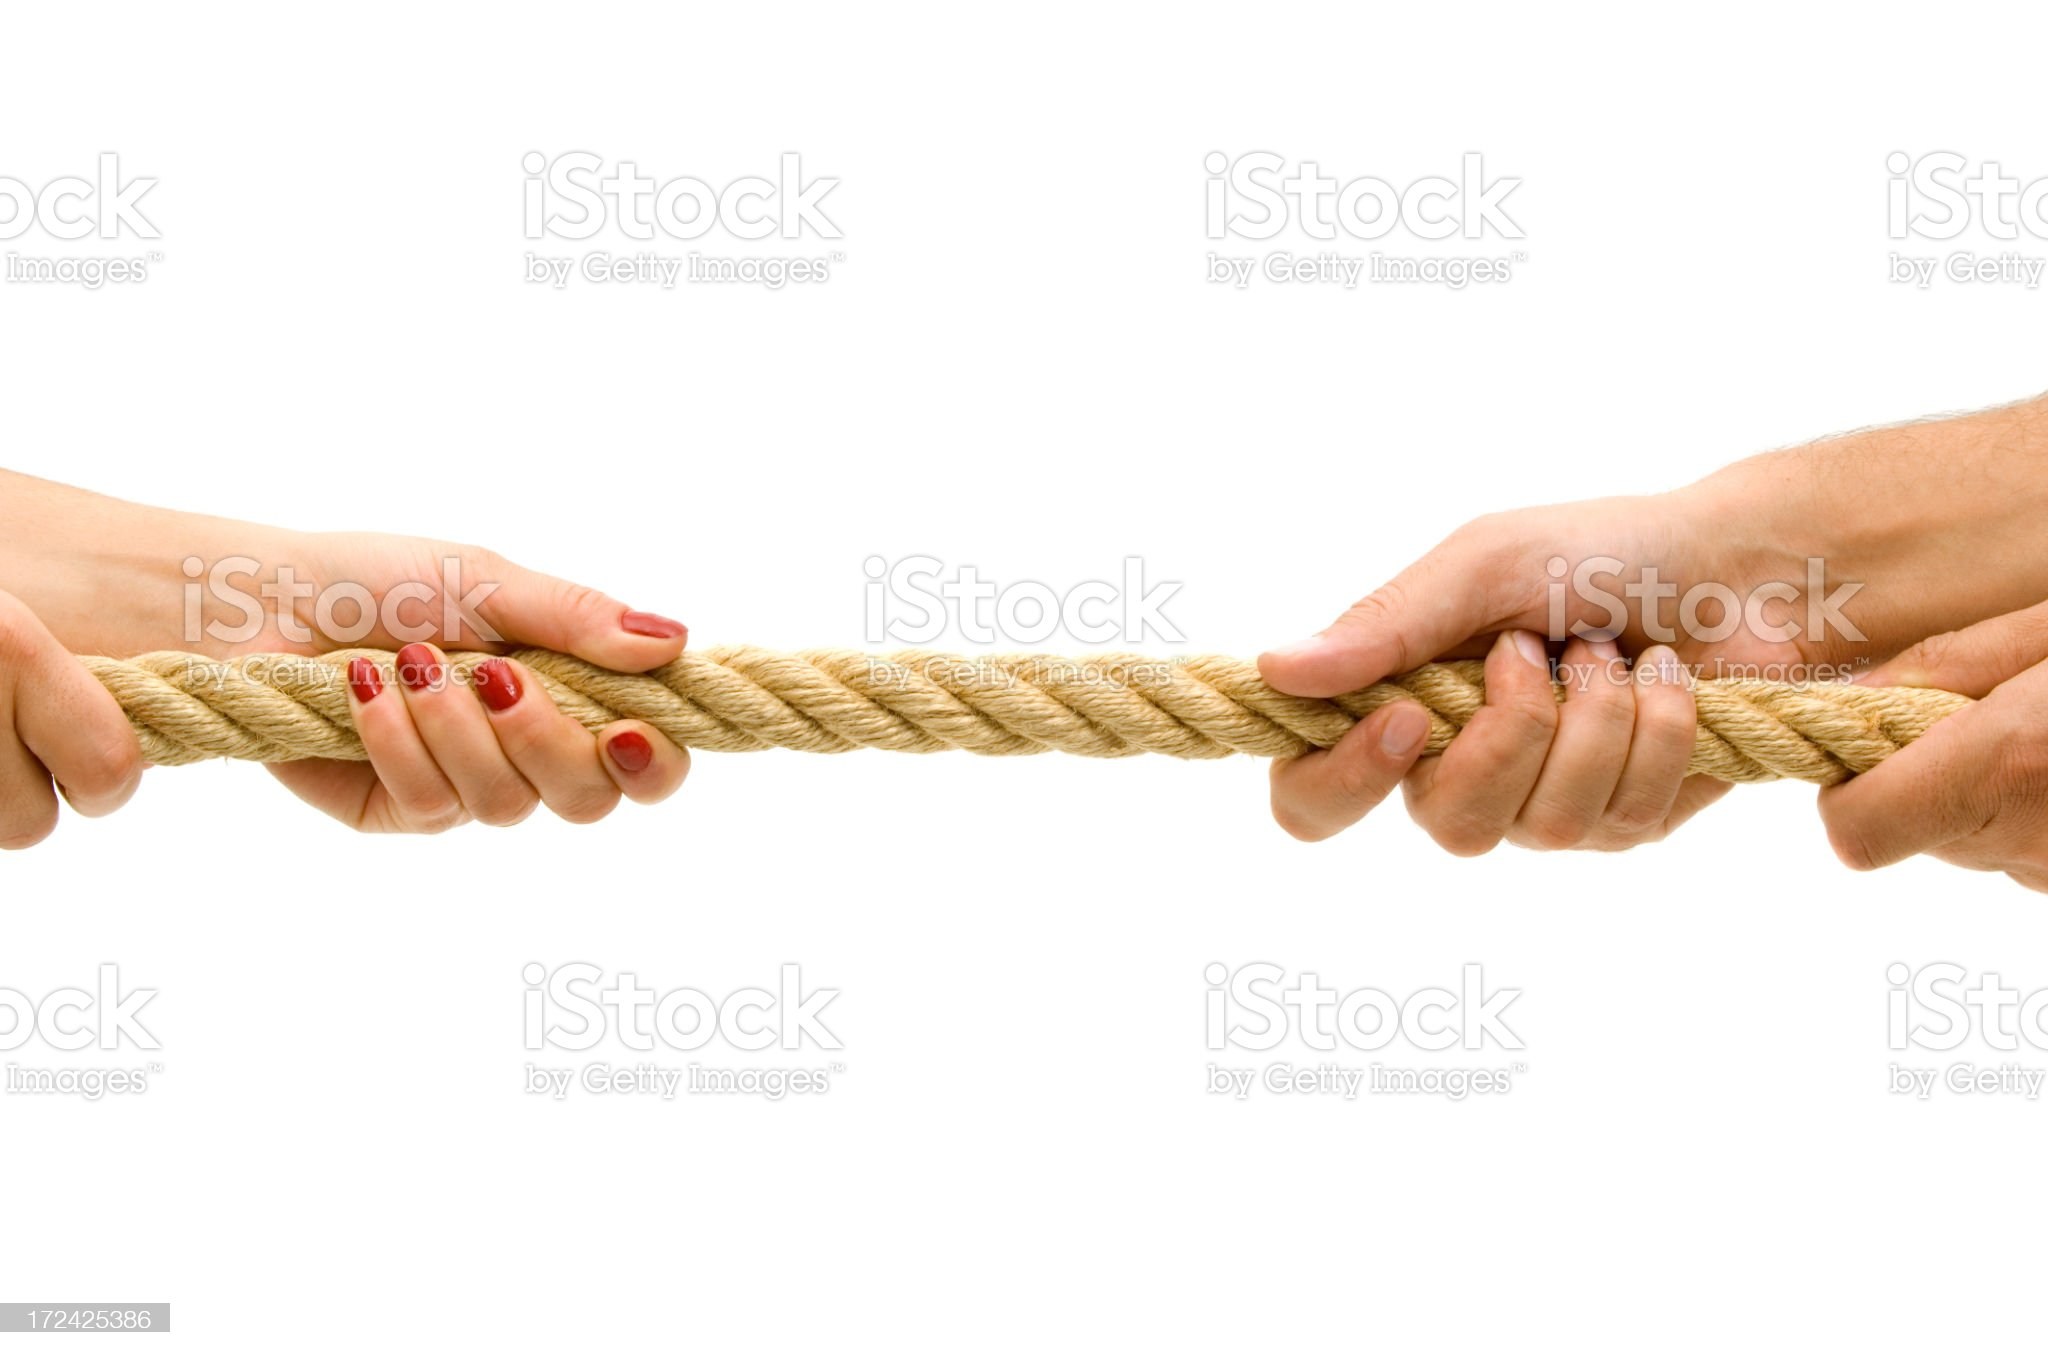 Two sets of hands pulling a rope from opposite sides royalty-free stock photo